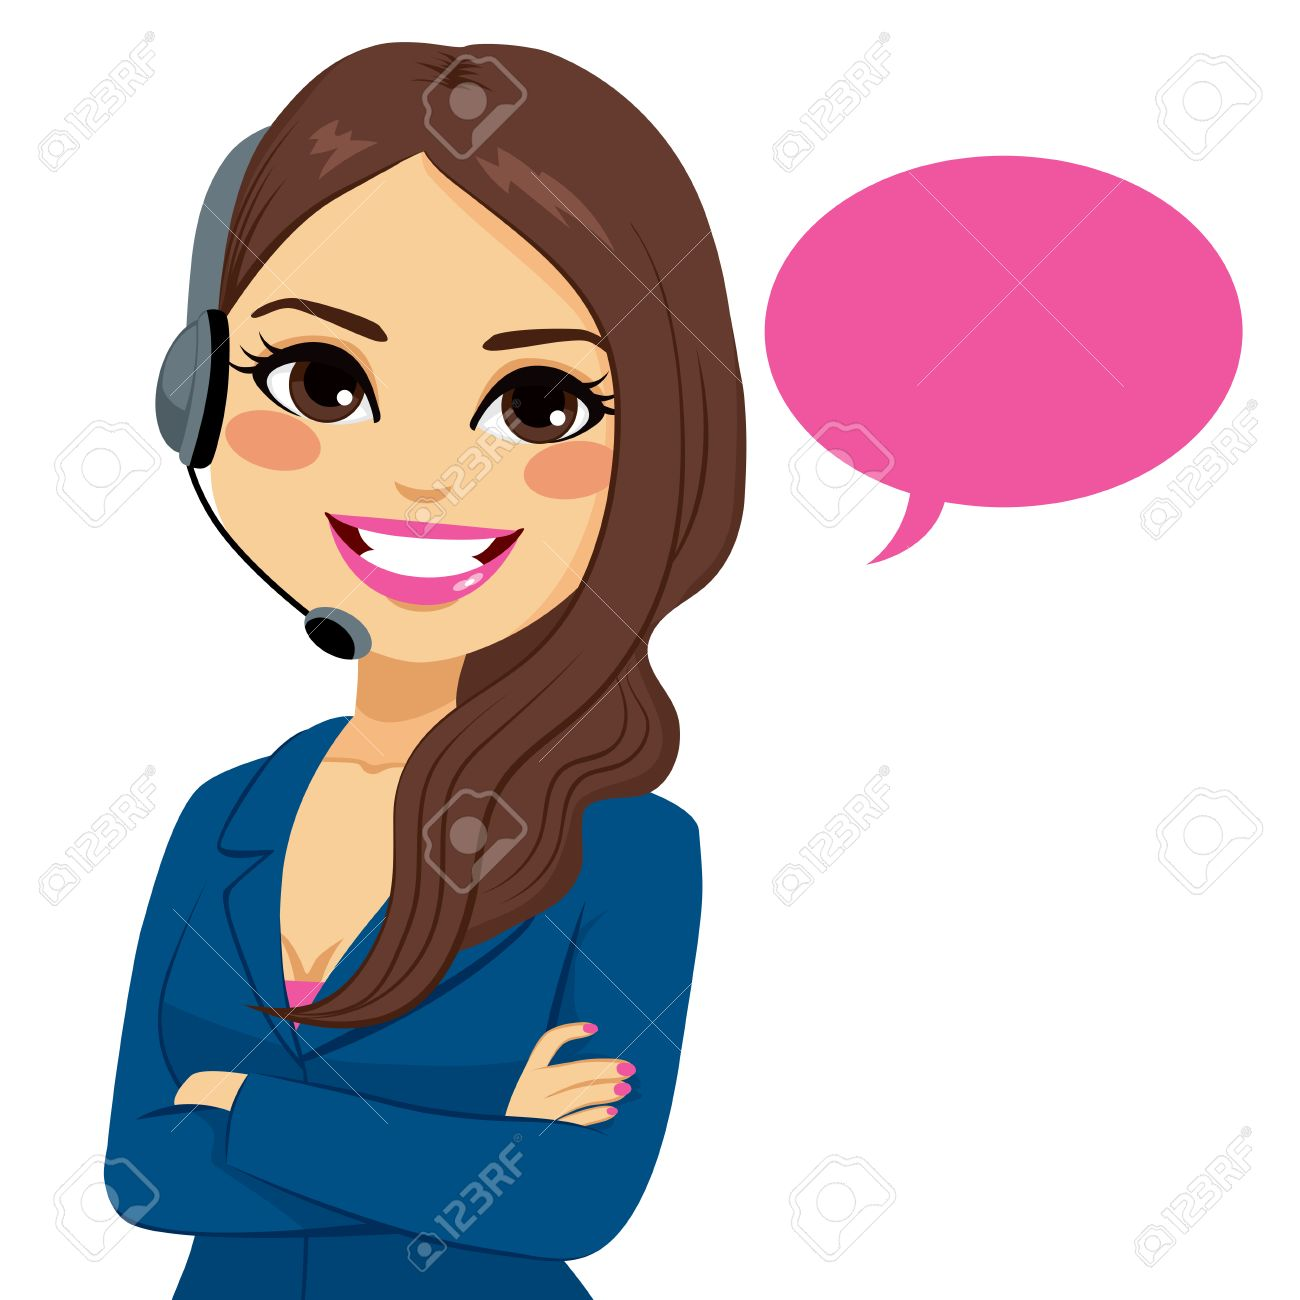 Portrait of happy smiling latina call center operator woman on support phone with headset isolated on white background - 53255996